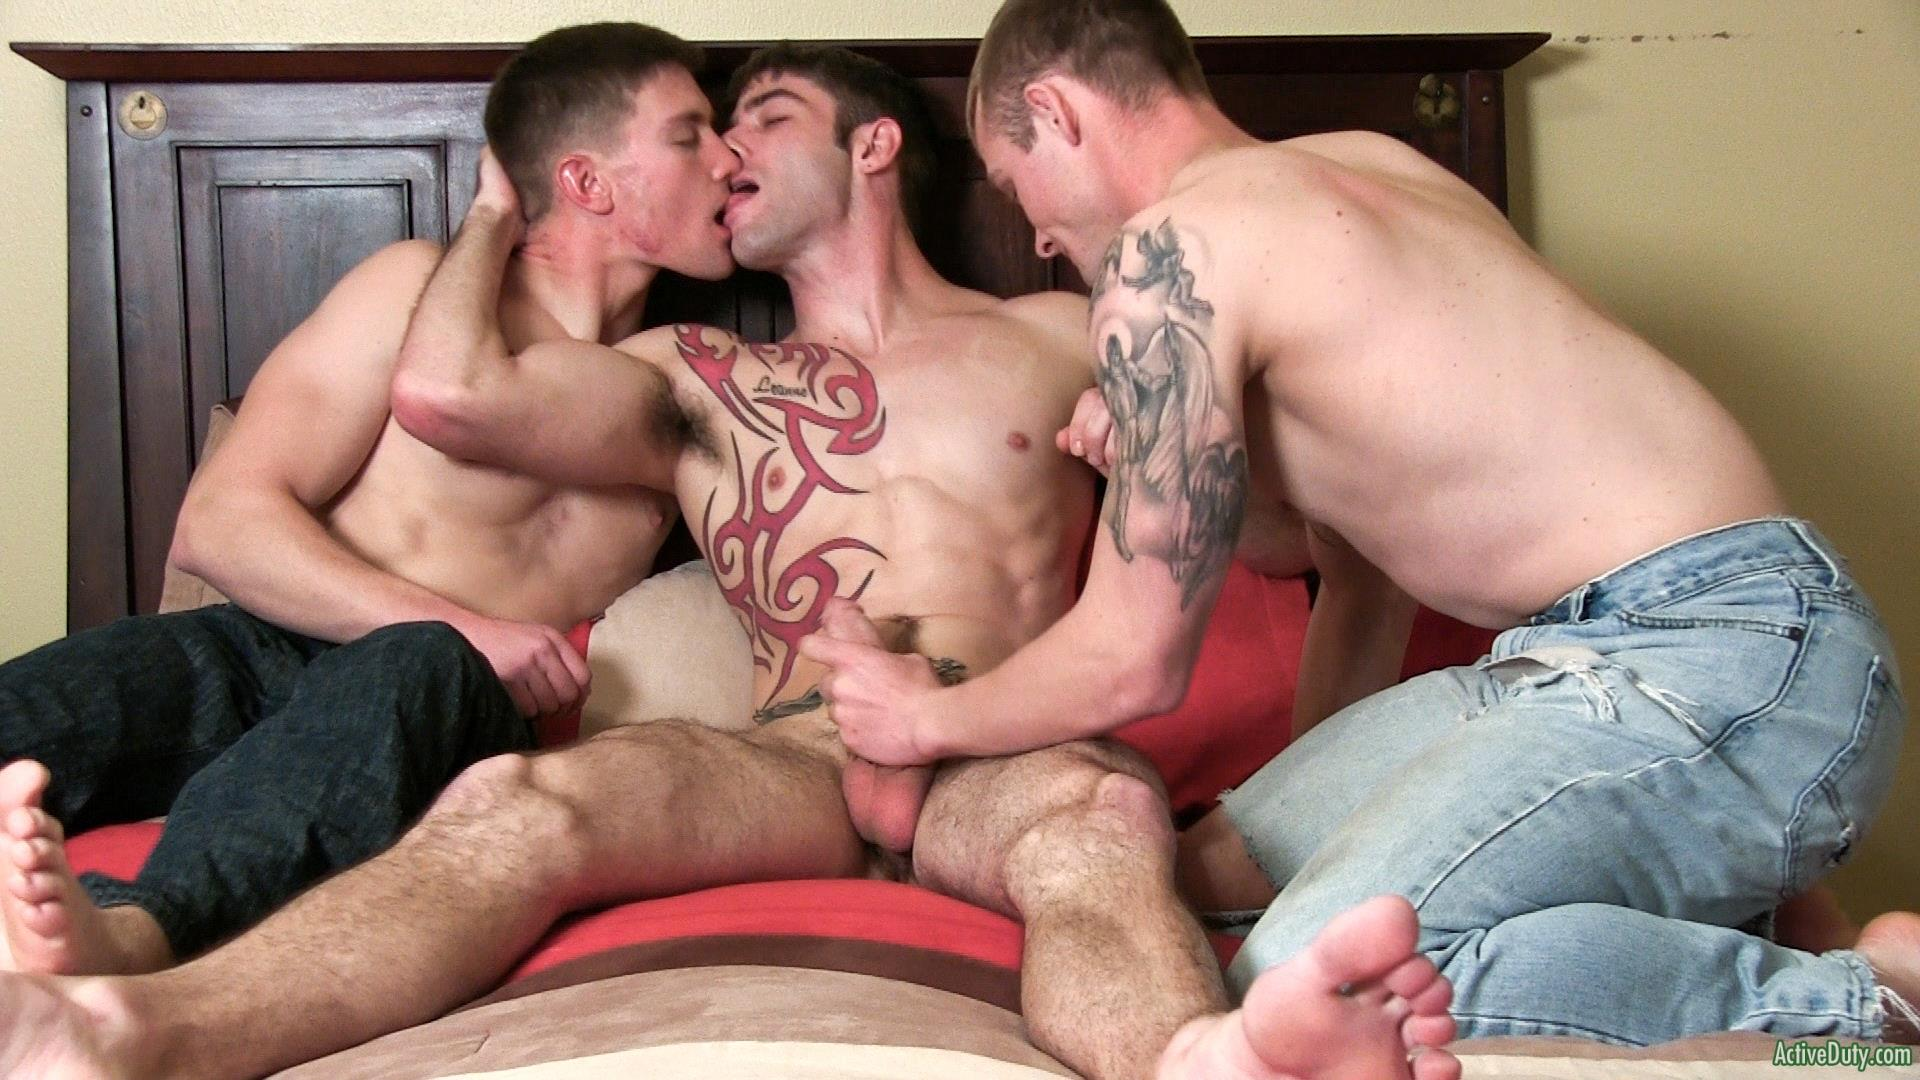 Active-Duty-Jake-Riley-Shea-Three-Straight-Army-Guys-Fucking-Hairy-Ass-Amateur-Gay-Porn-01 Three Way Army Buddy Hairy Ass Flip Flop Fucking